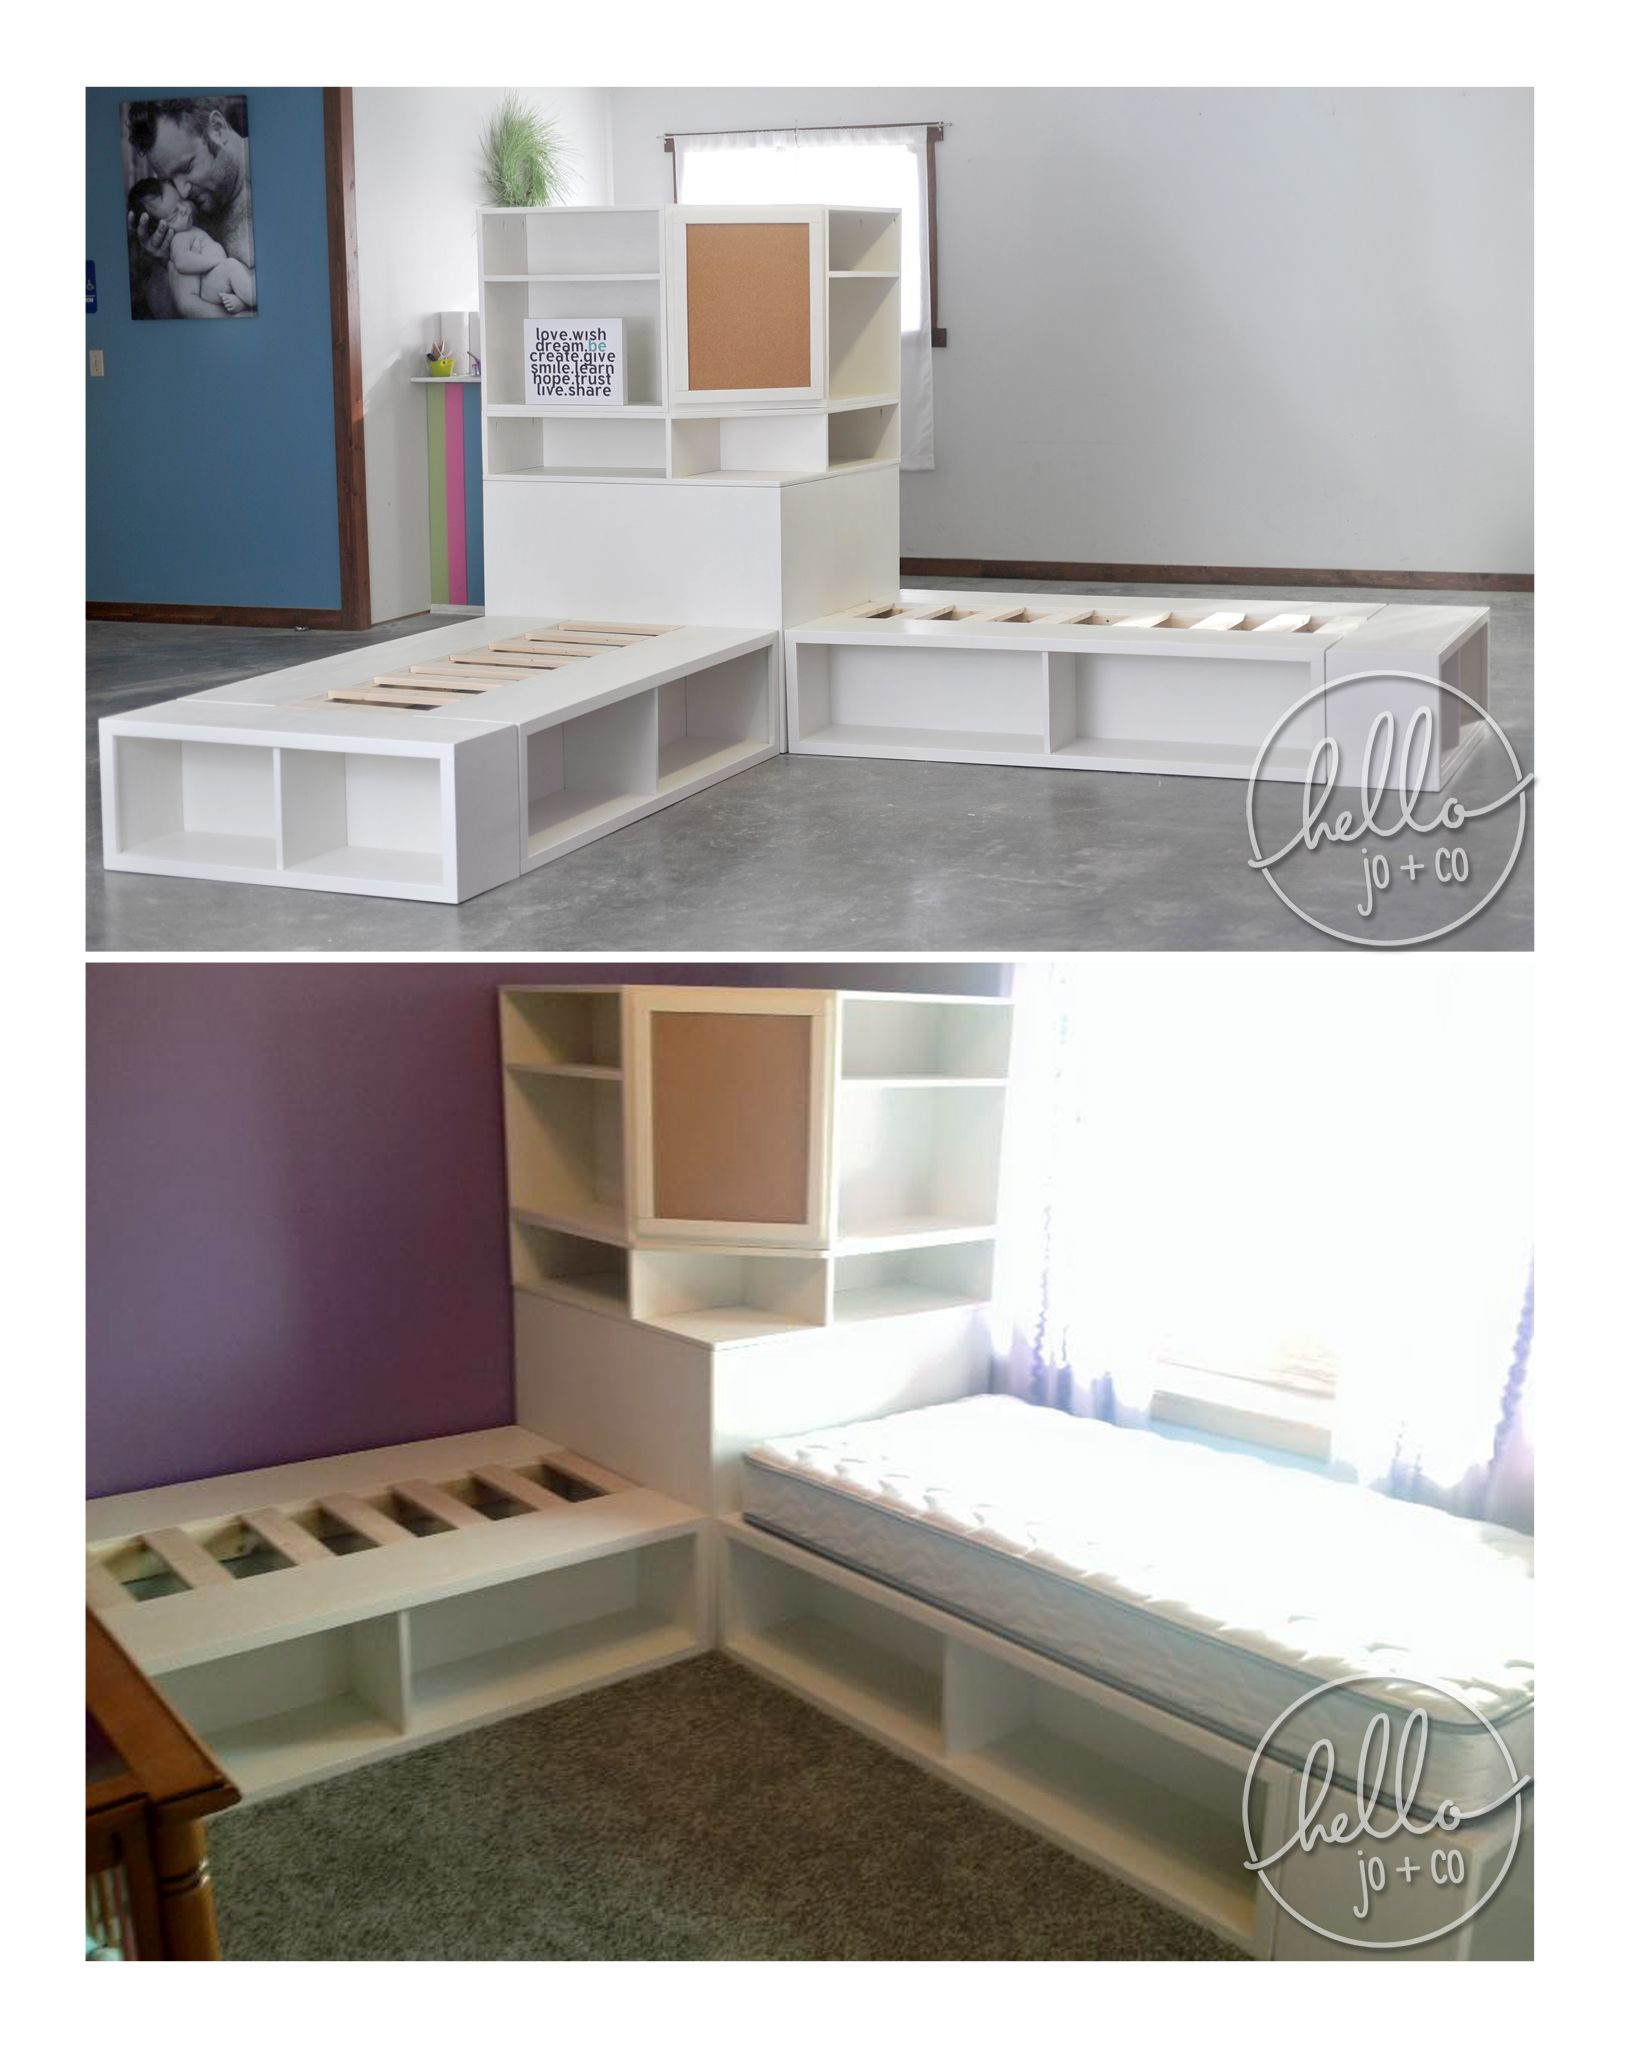 Boy Bedroom Storage: Www.hellojoandco.com Store It Corner Unit Corner Hutch And